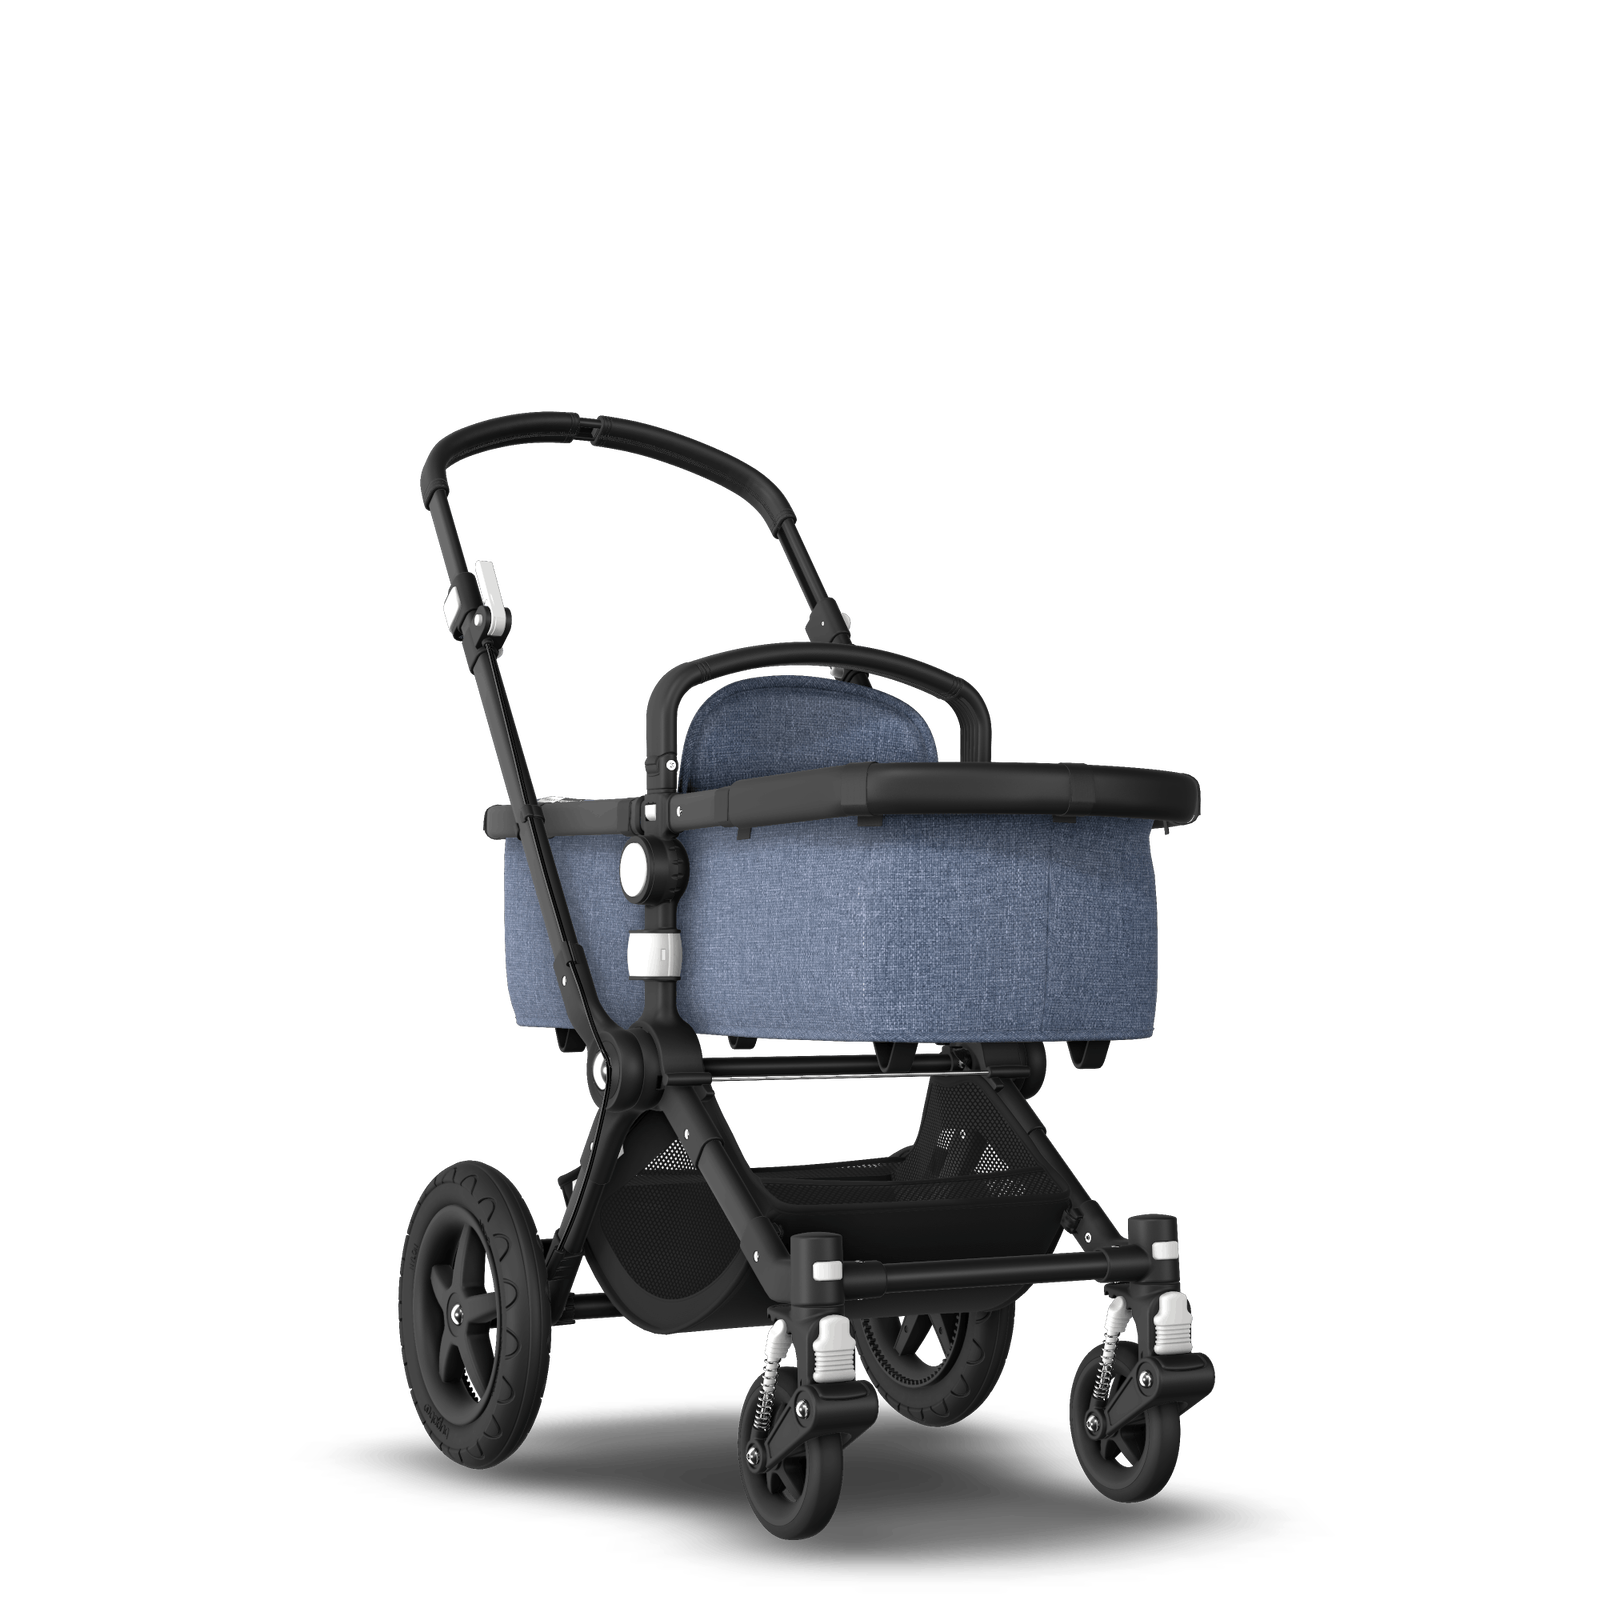 Bugaboo Cameleon 3 Plus base